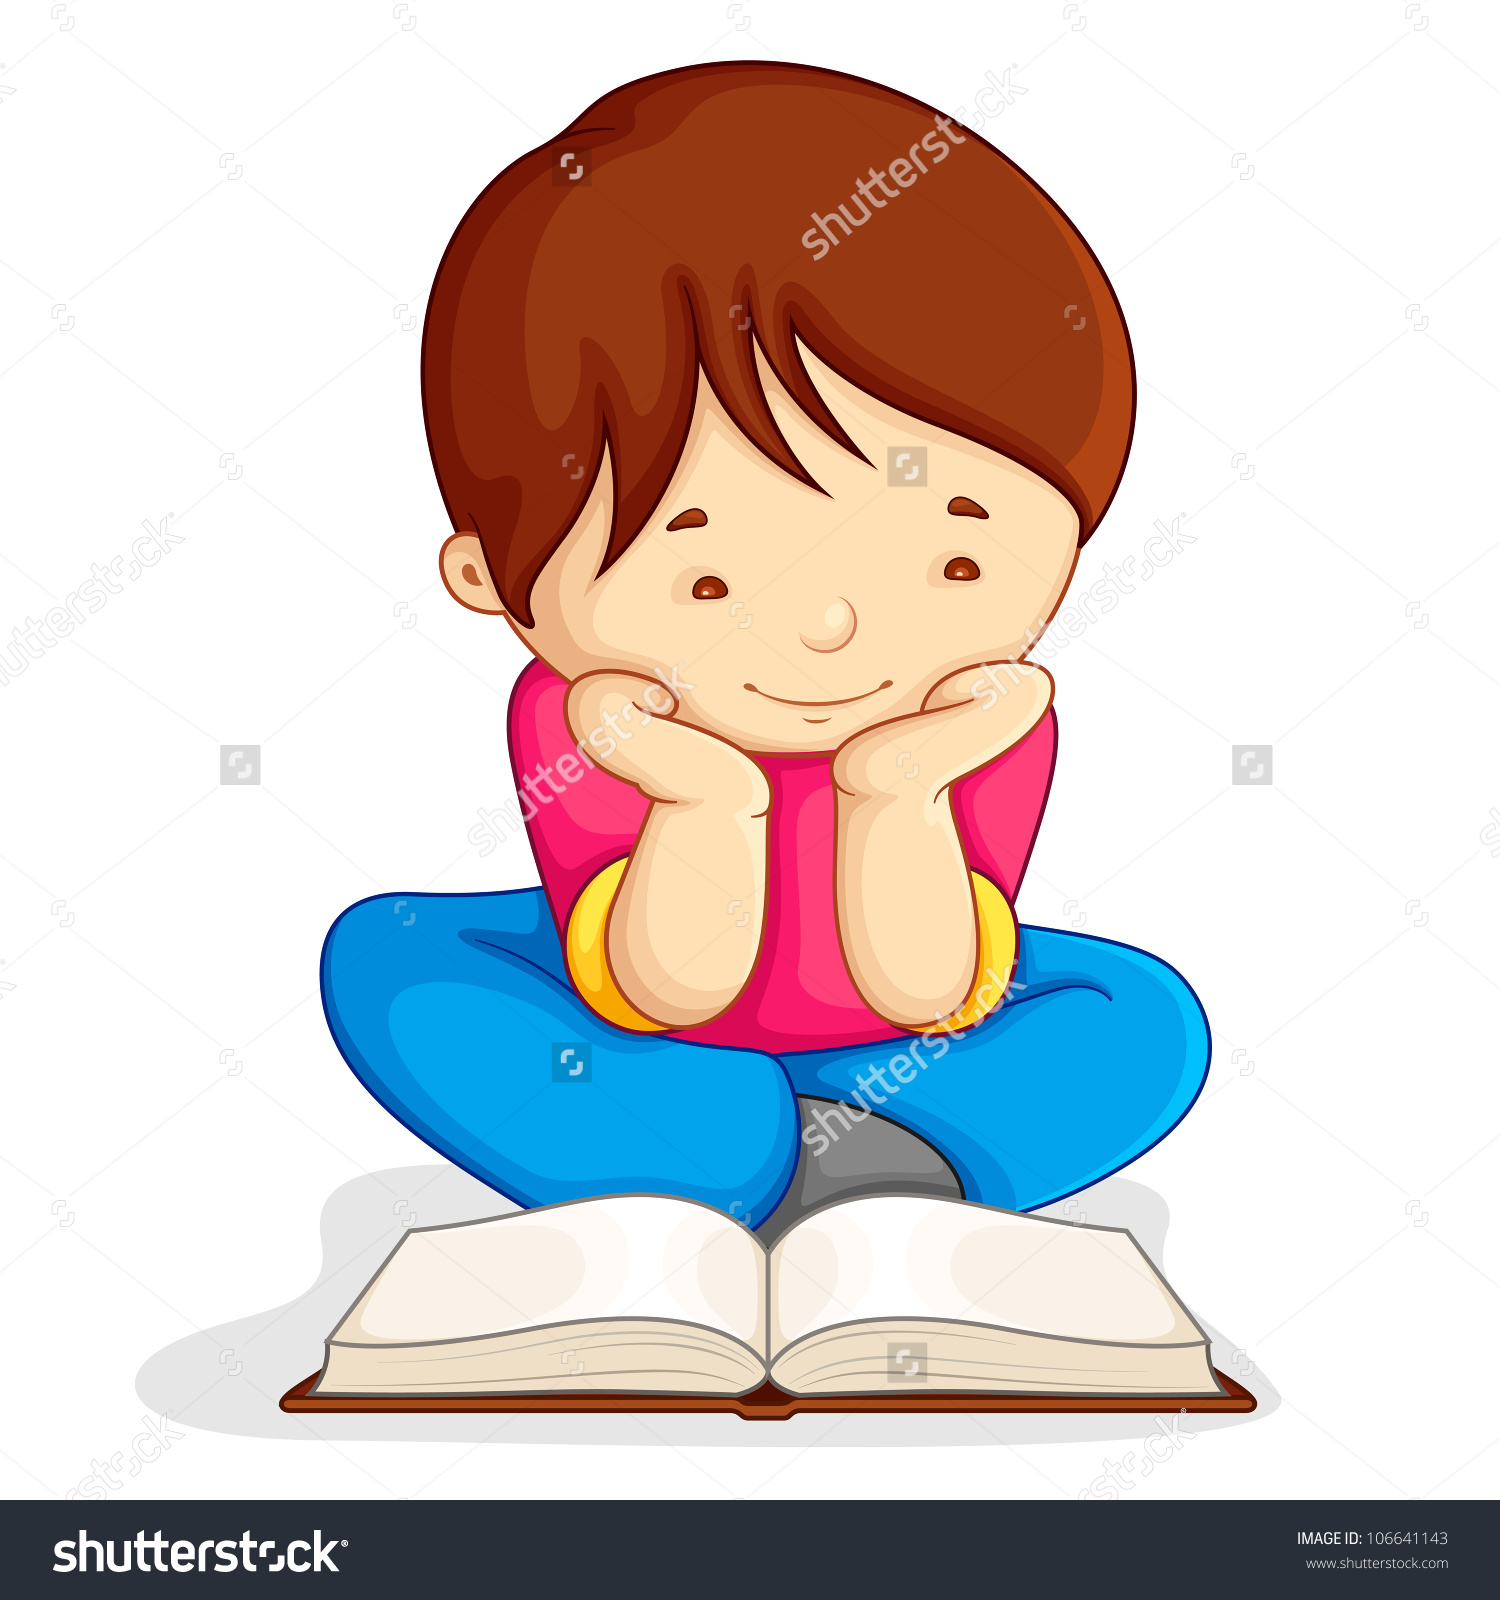 clipart boy sitting and reading - Clipground